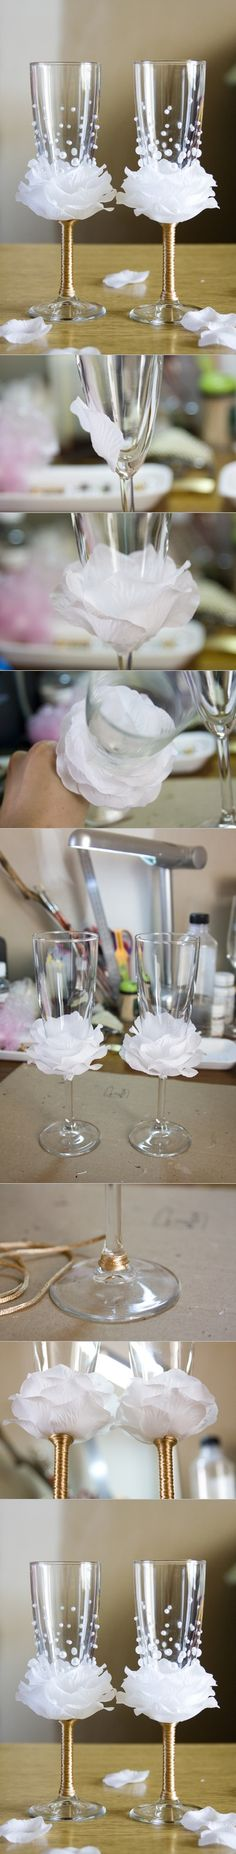 DIY Flower Bead Decorated Wine Glasses. Pretty for a princess party, too, if they can be made removable.